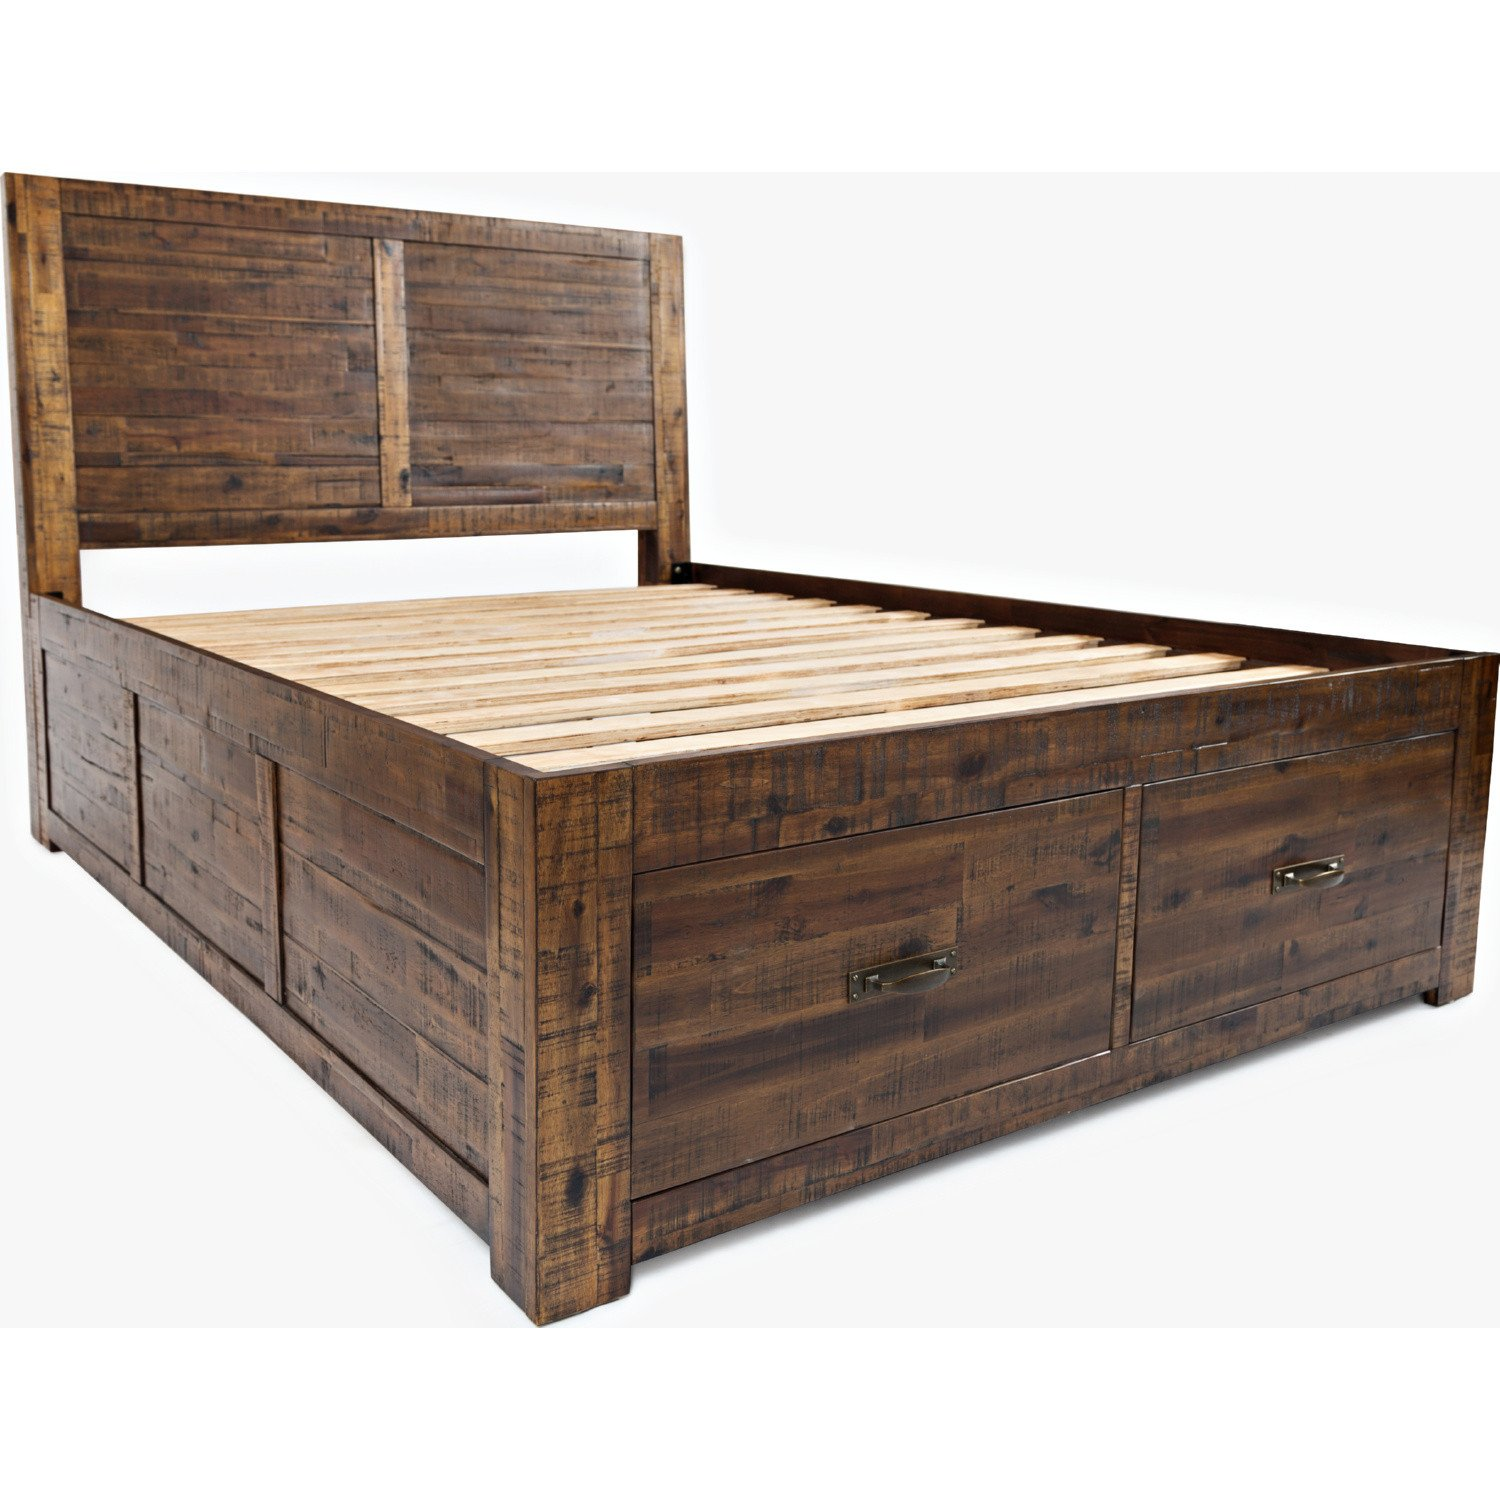 Distressed Wood Bedroom Furniture Best Of Jofran sonoma Creek Queen Storage Bed Distressed Finish In